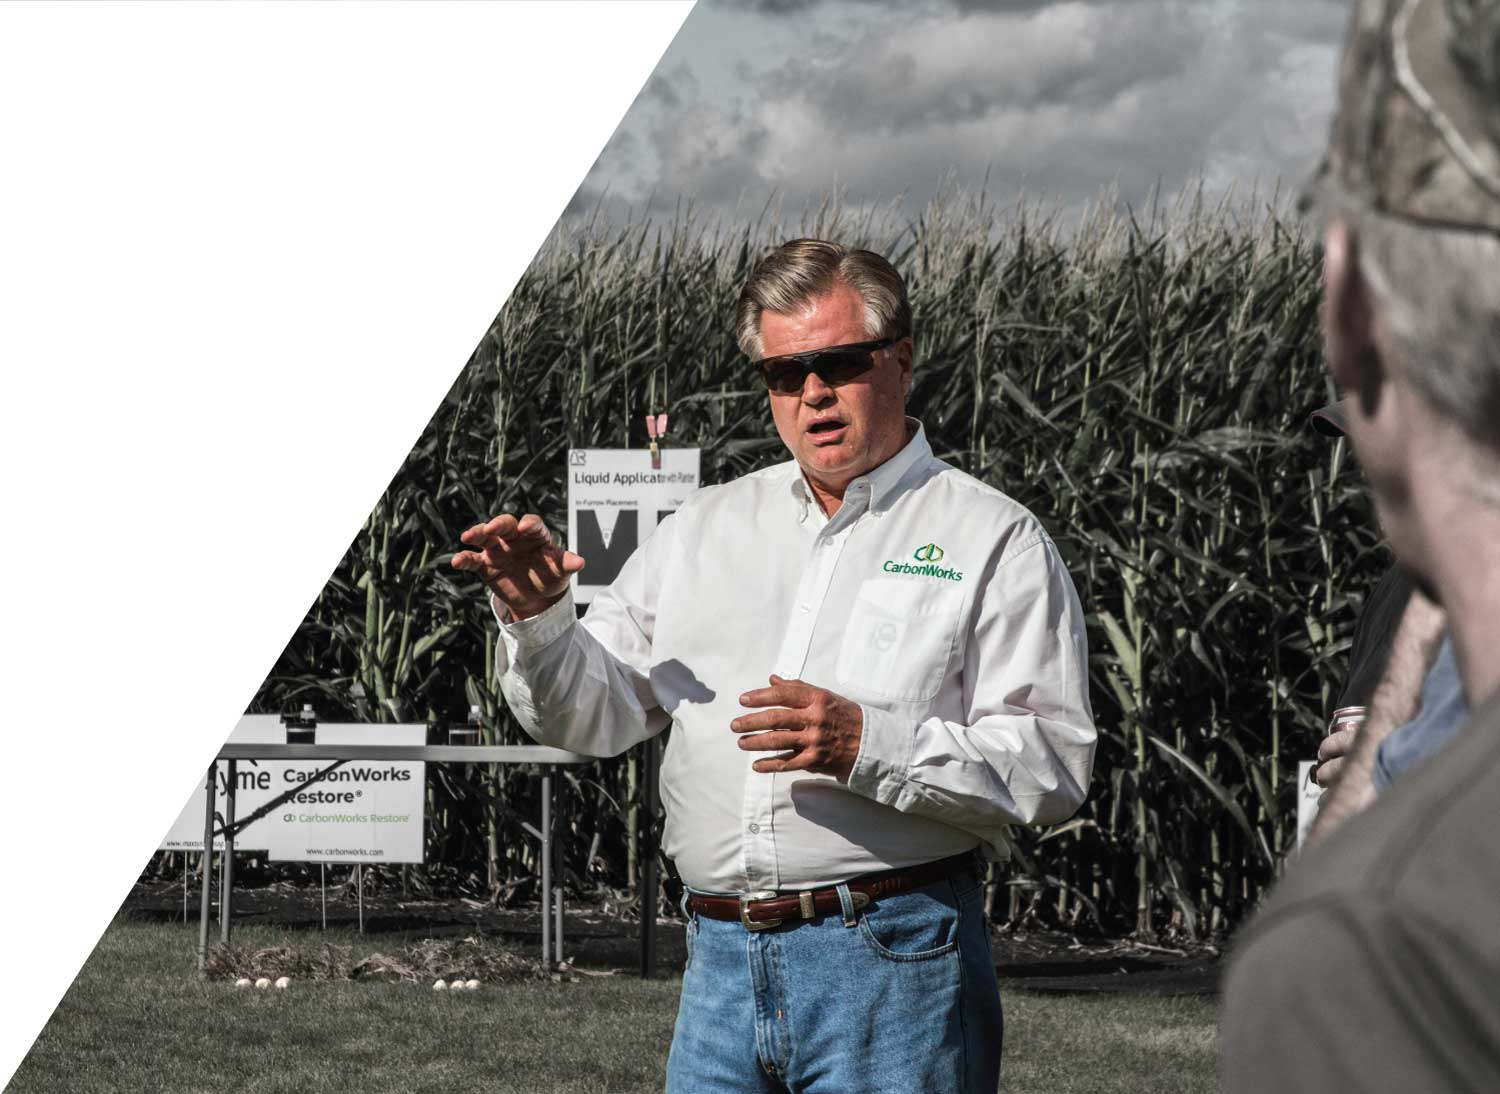 George Sims teaching farmers